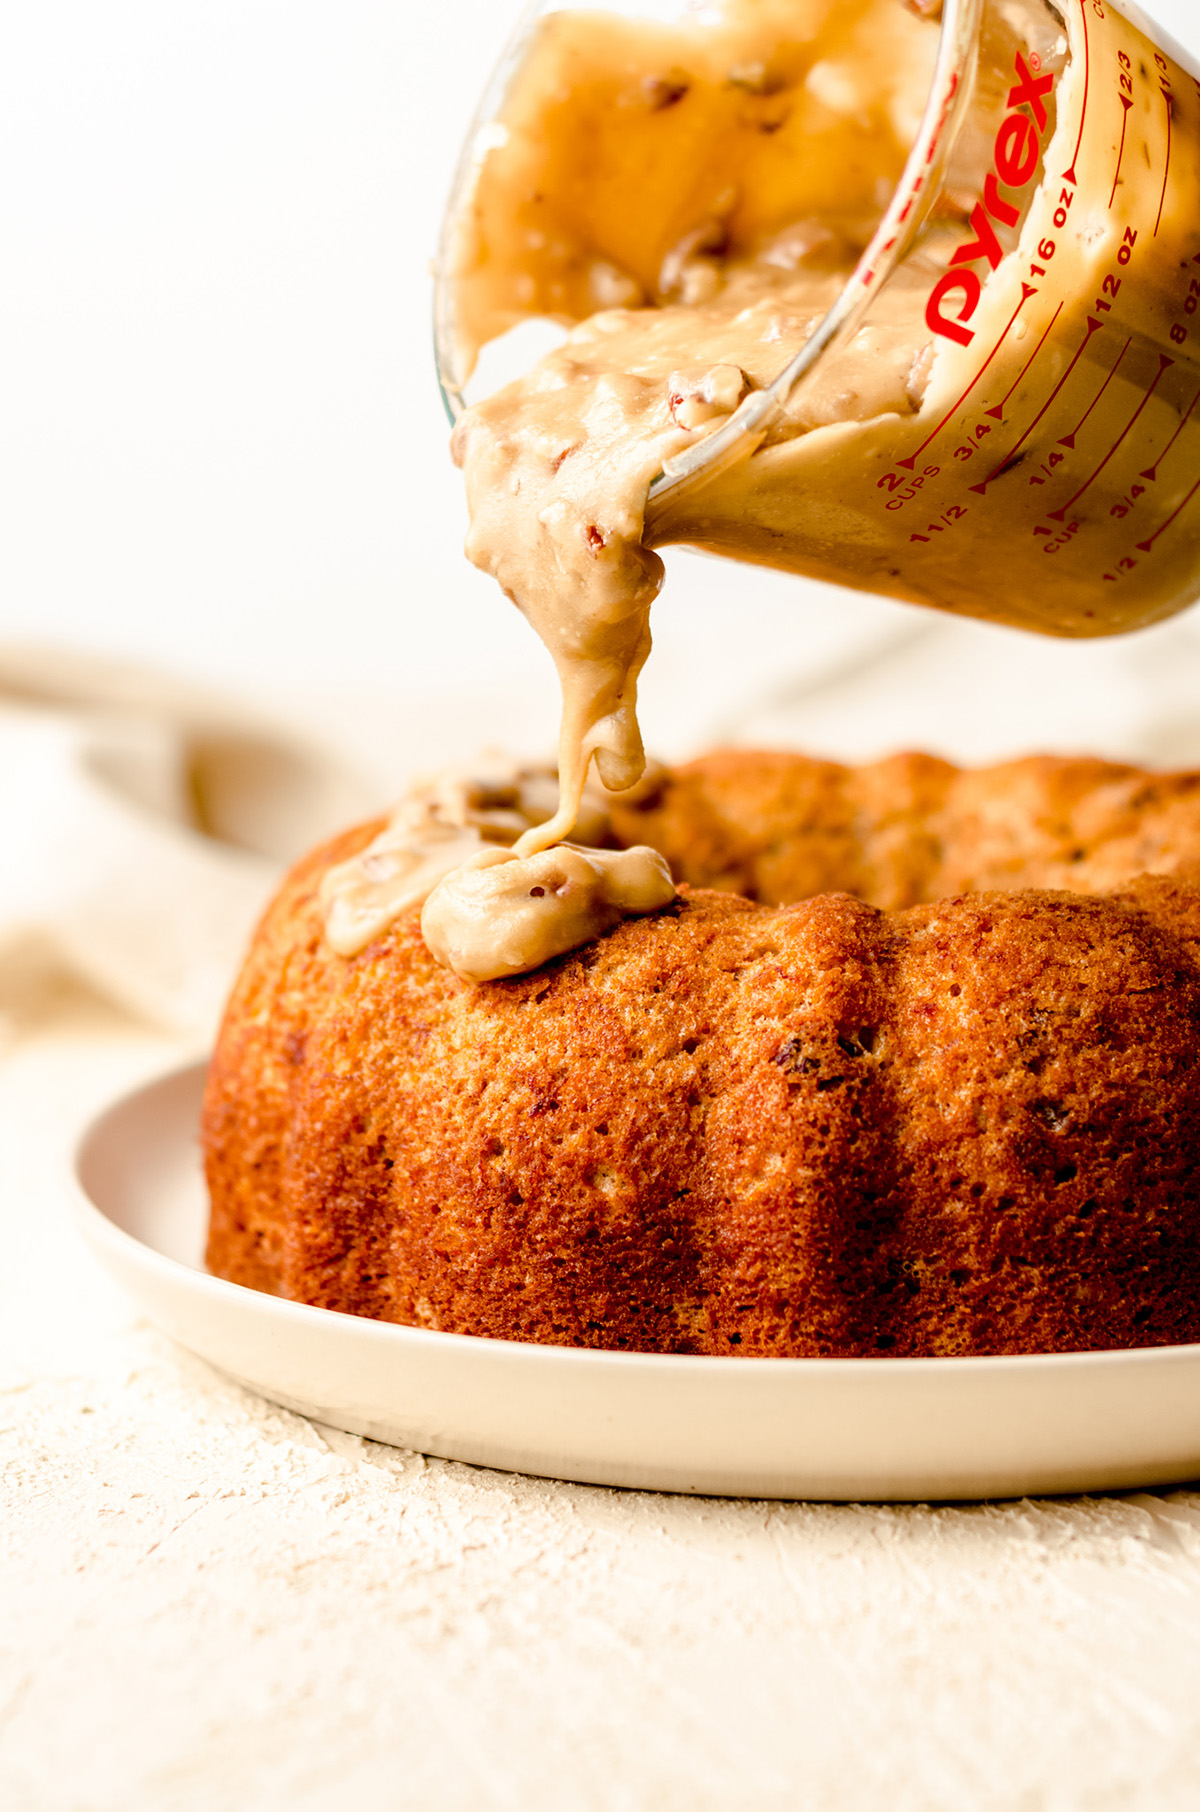 pouring pecan praline icing on a bananas foster cake